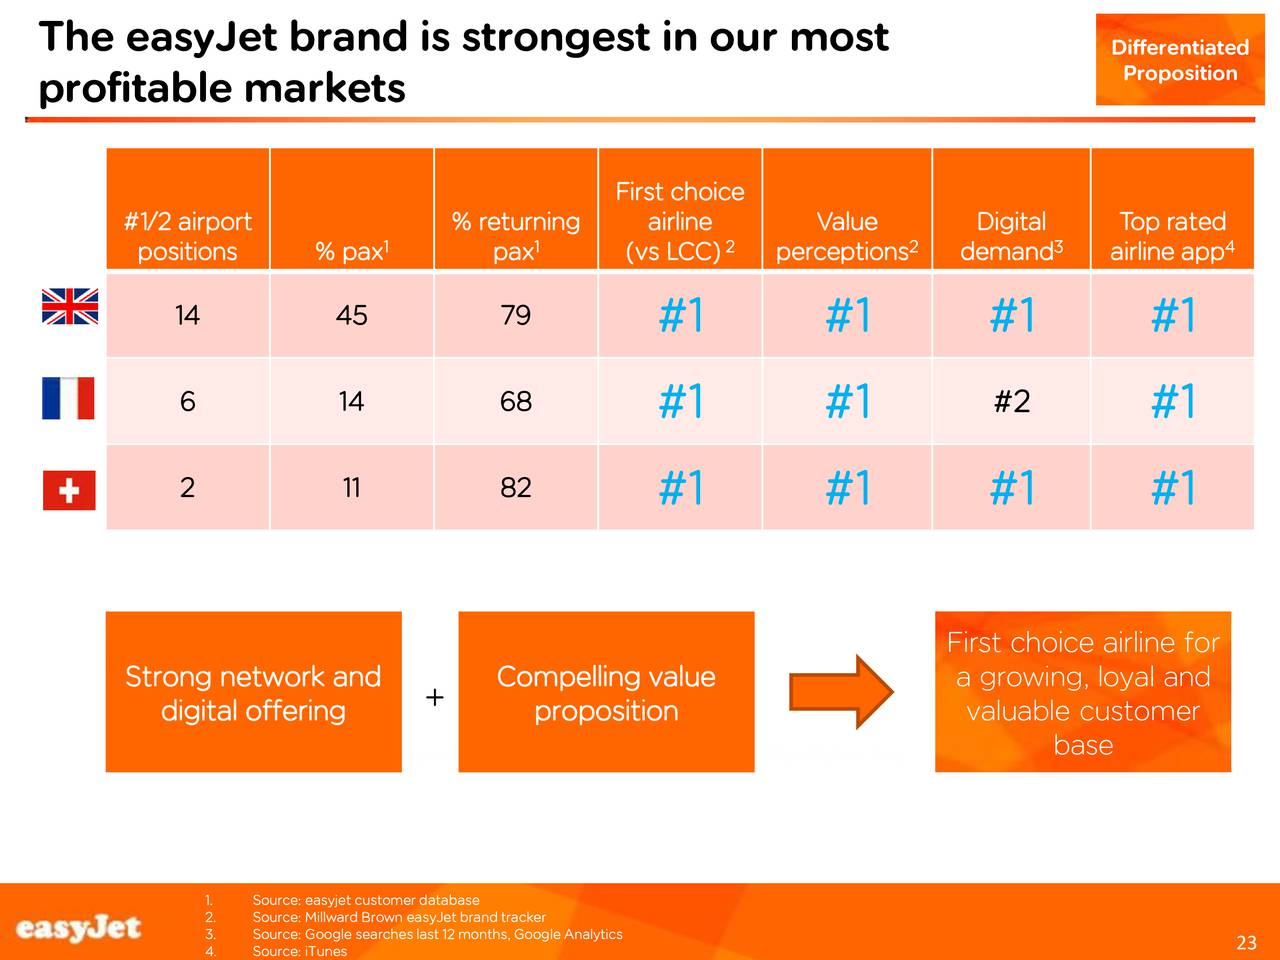 marketing strategies for the airline easyjet A marketing strategy implemented by easyjet which has contributed to their success, was the 'fly on the wall' documentary series airline broadcasted in easyjet promoted themselves as a cheap and reliable airline, in a market where there were previously few competitors going for the low cost image.